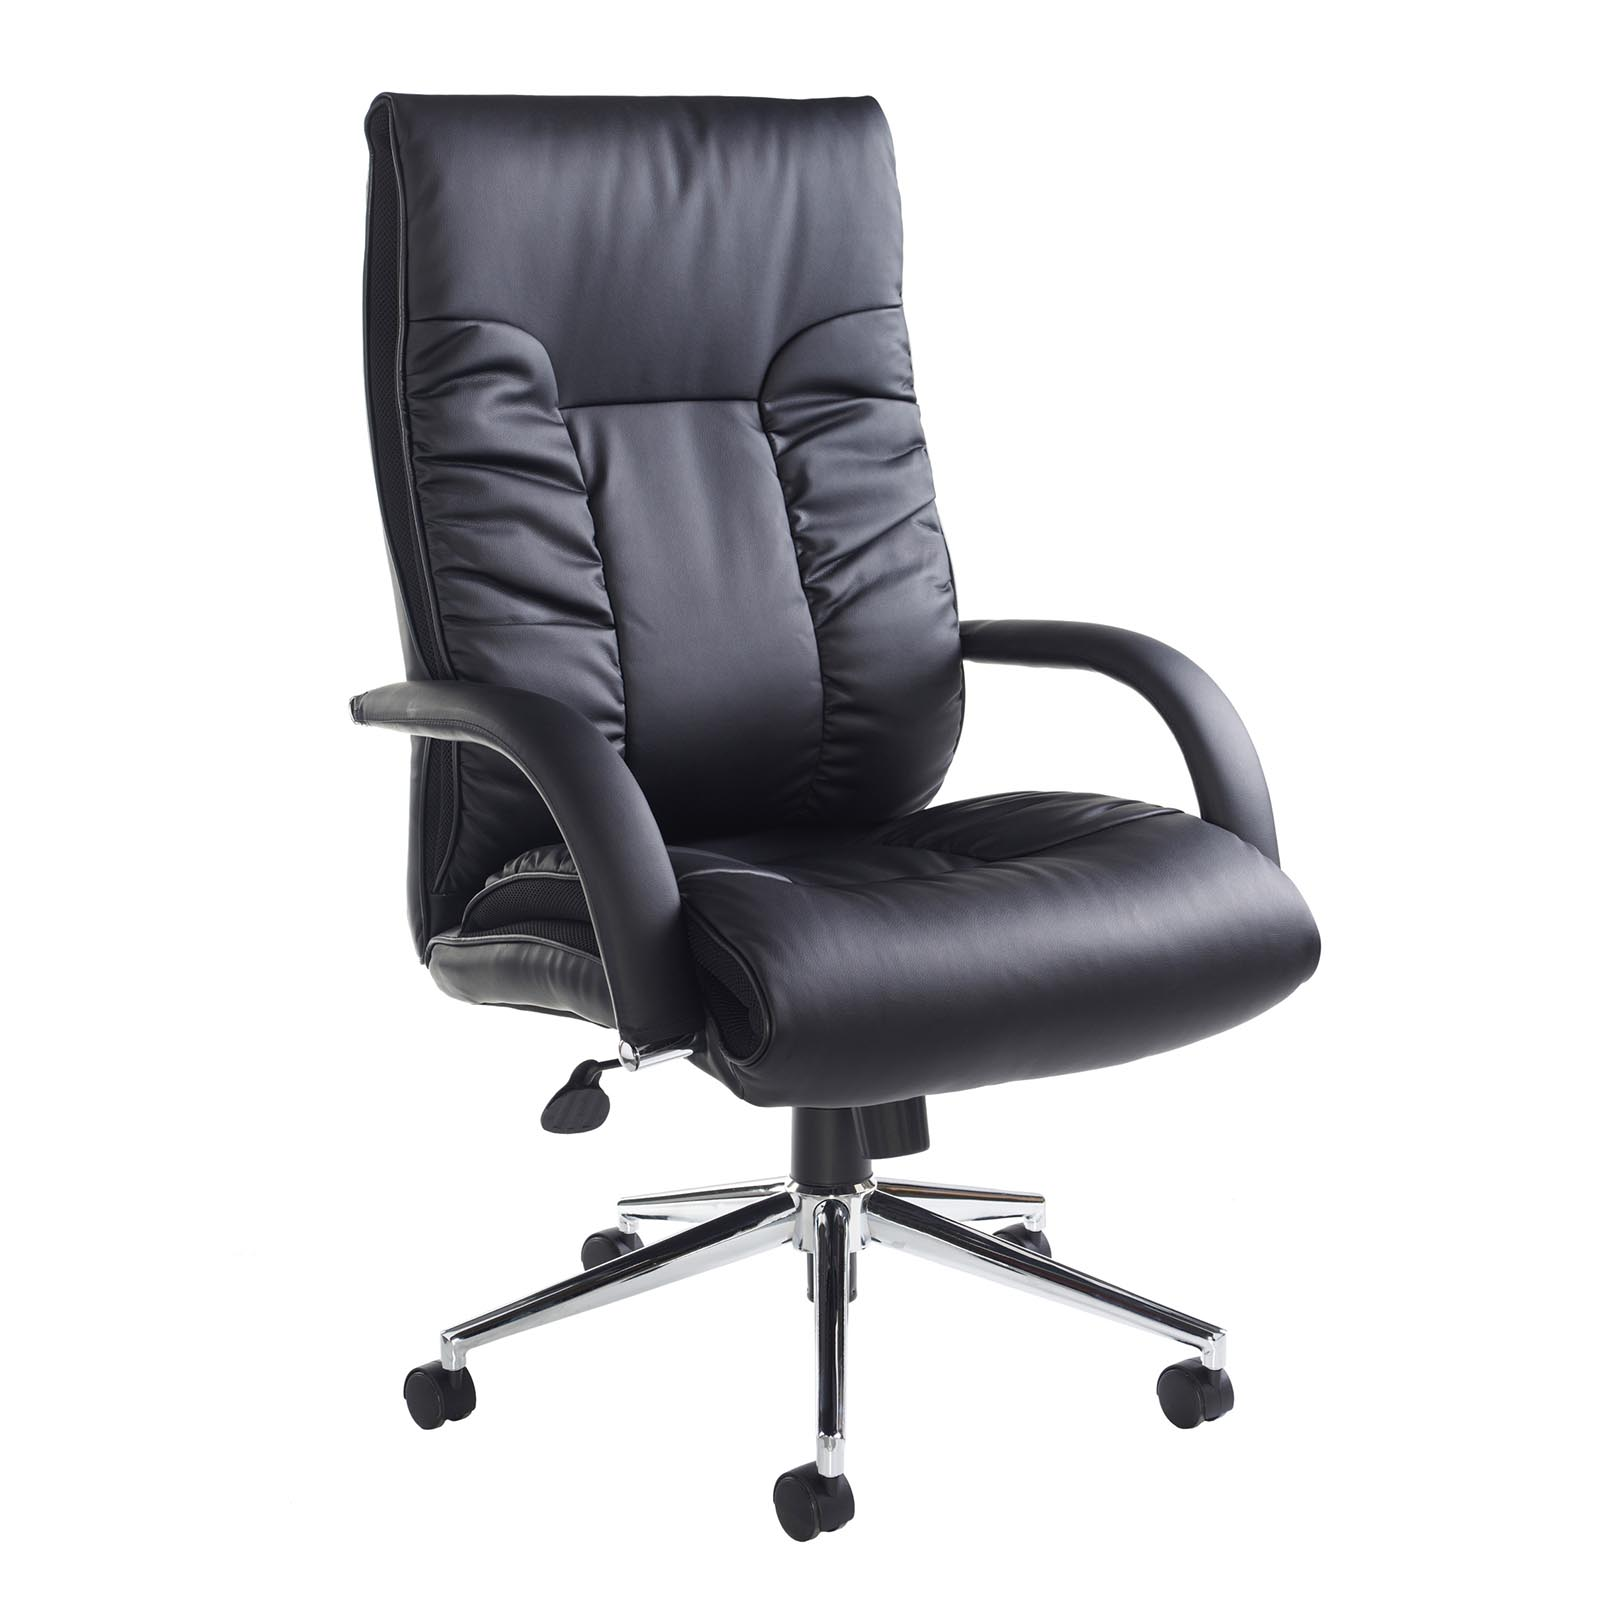 Executive Chairs Derby high back executive chair - black faux leather